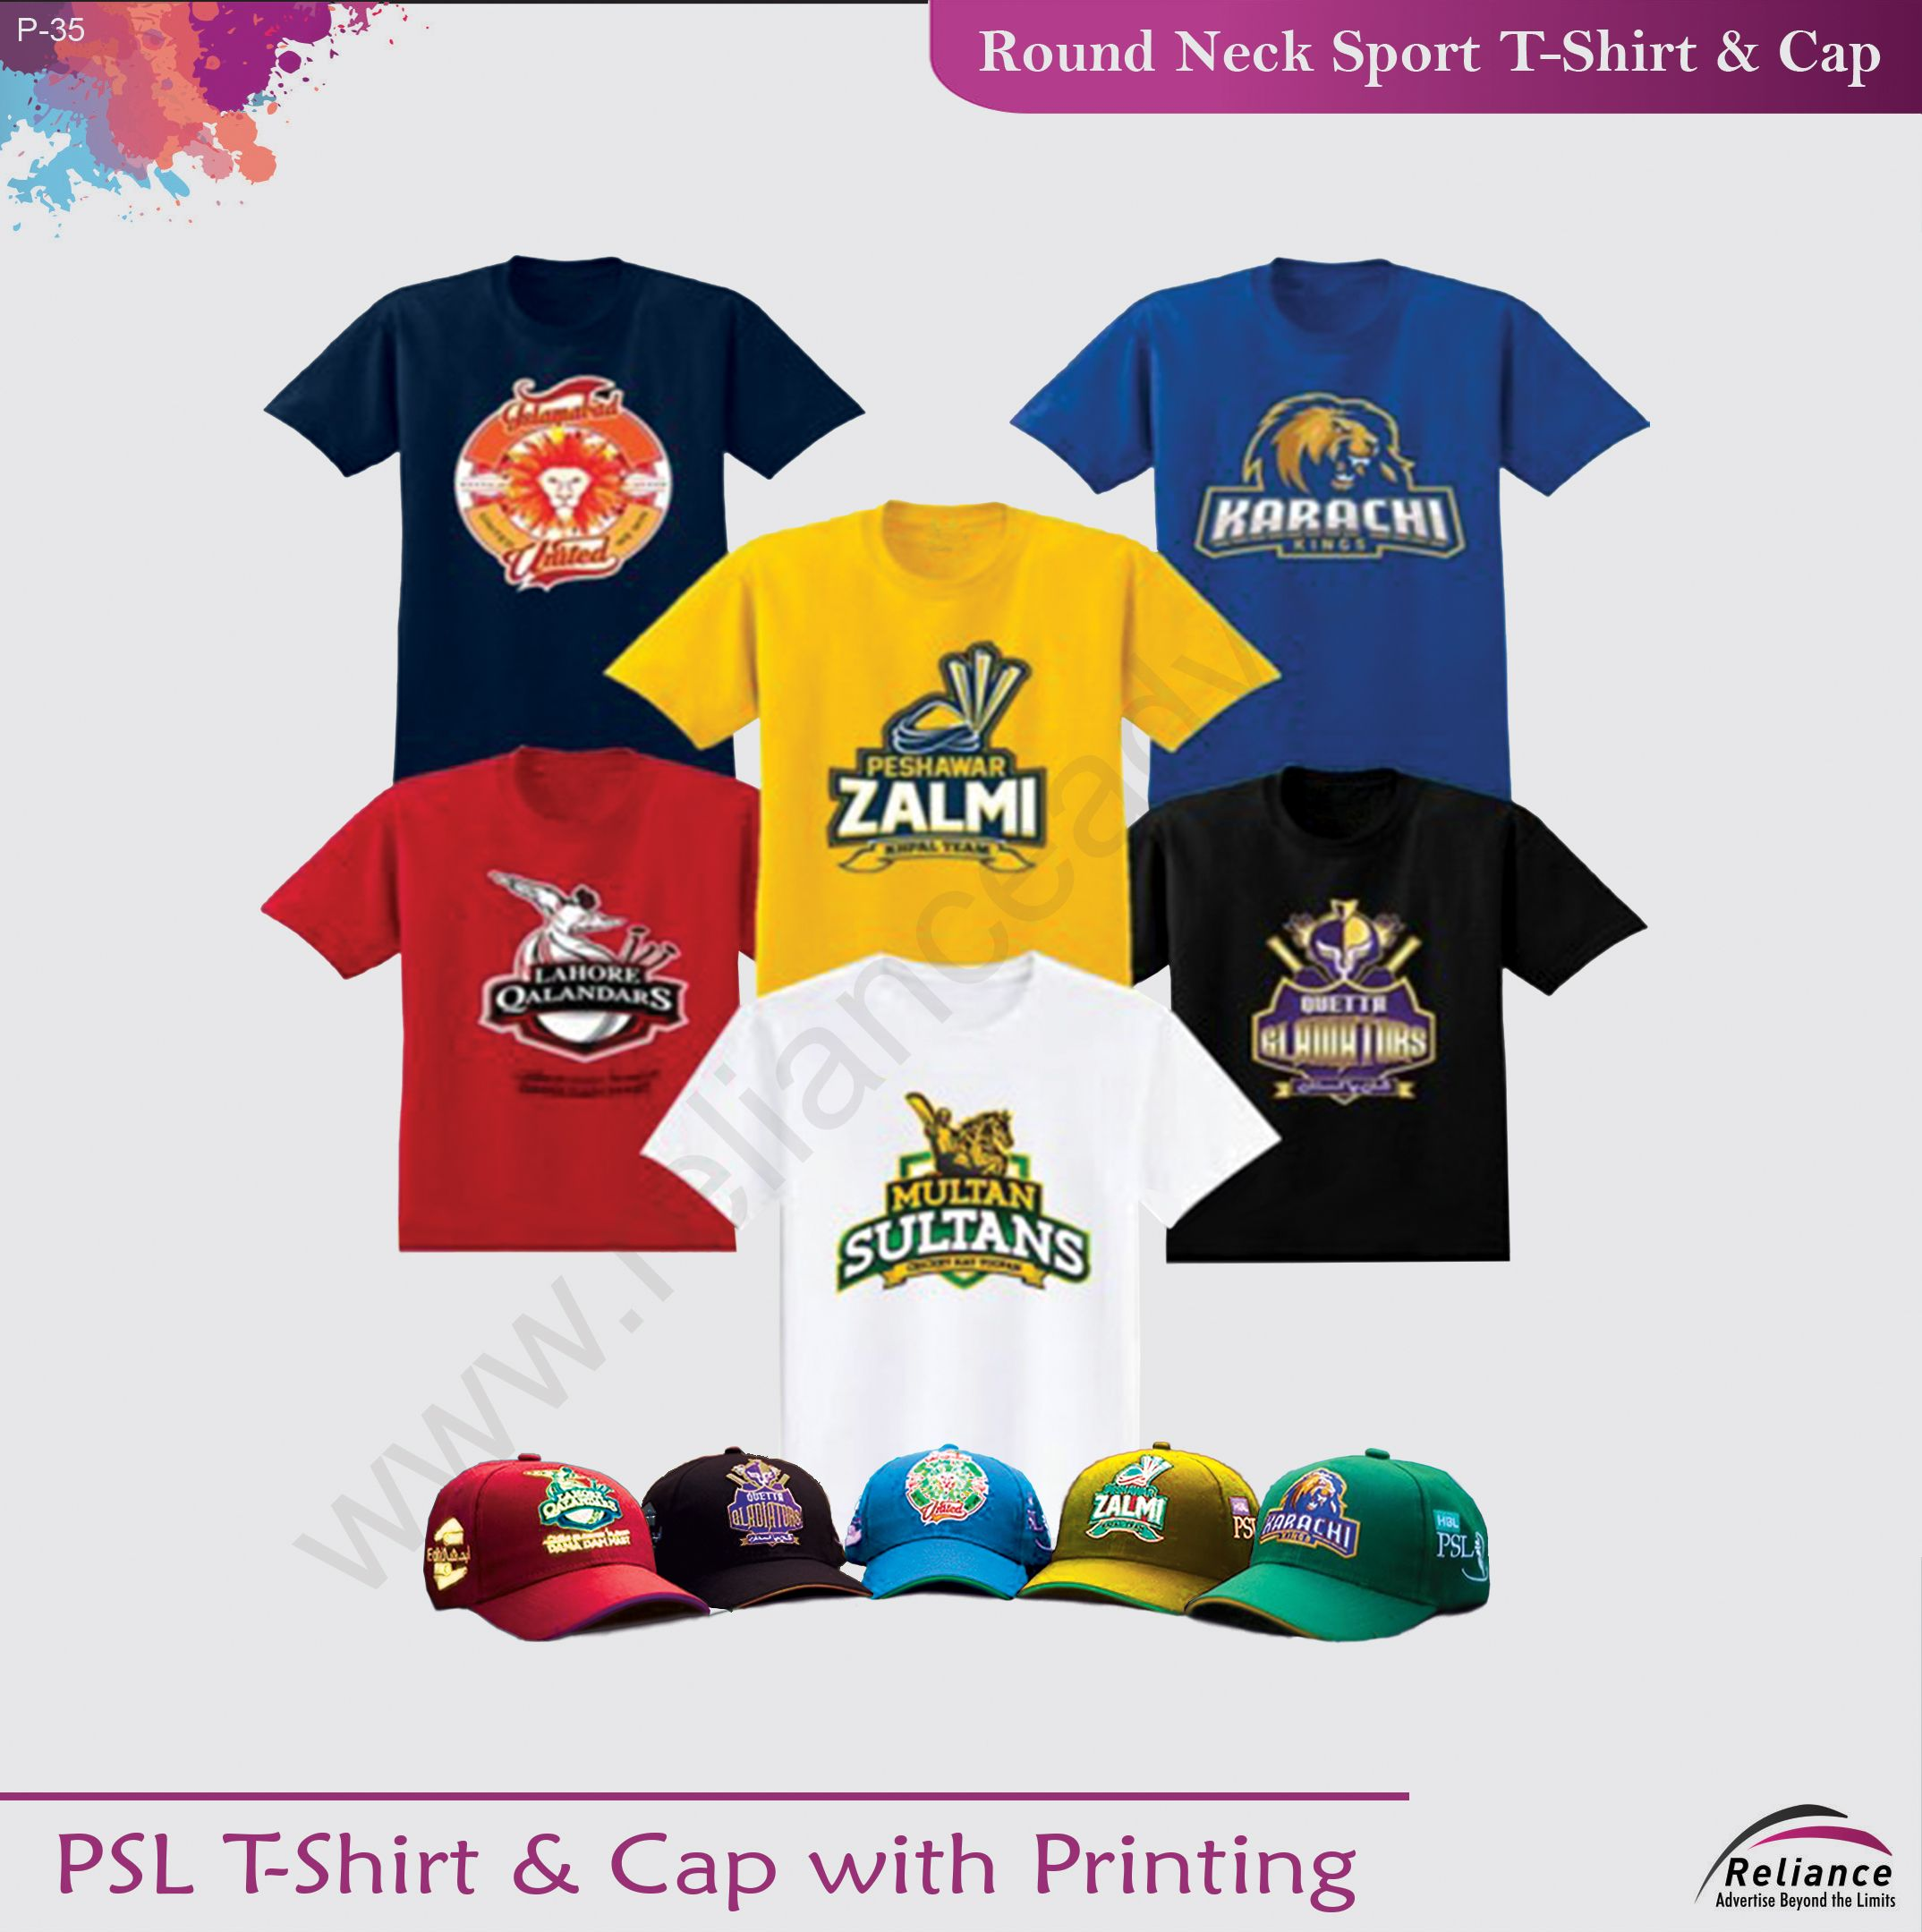 Discover our PSL T-Shirt & Cap with Printing